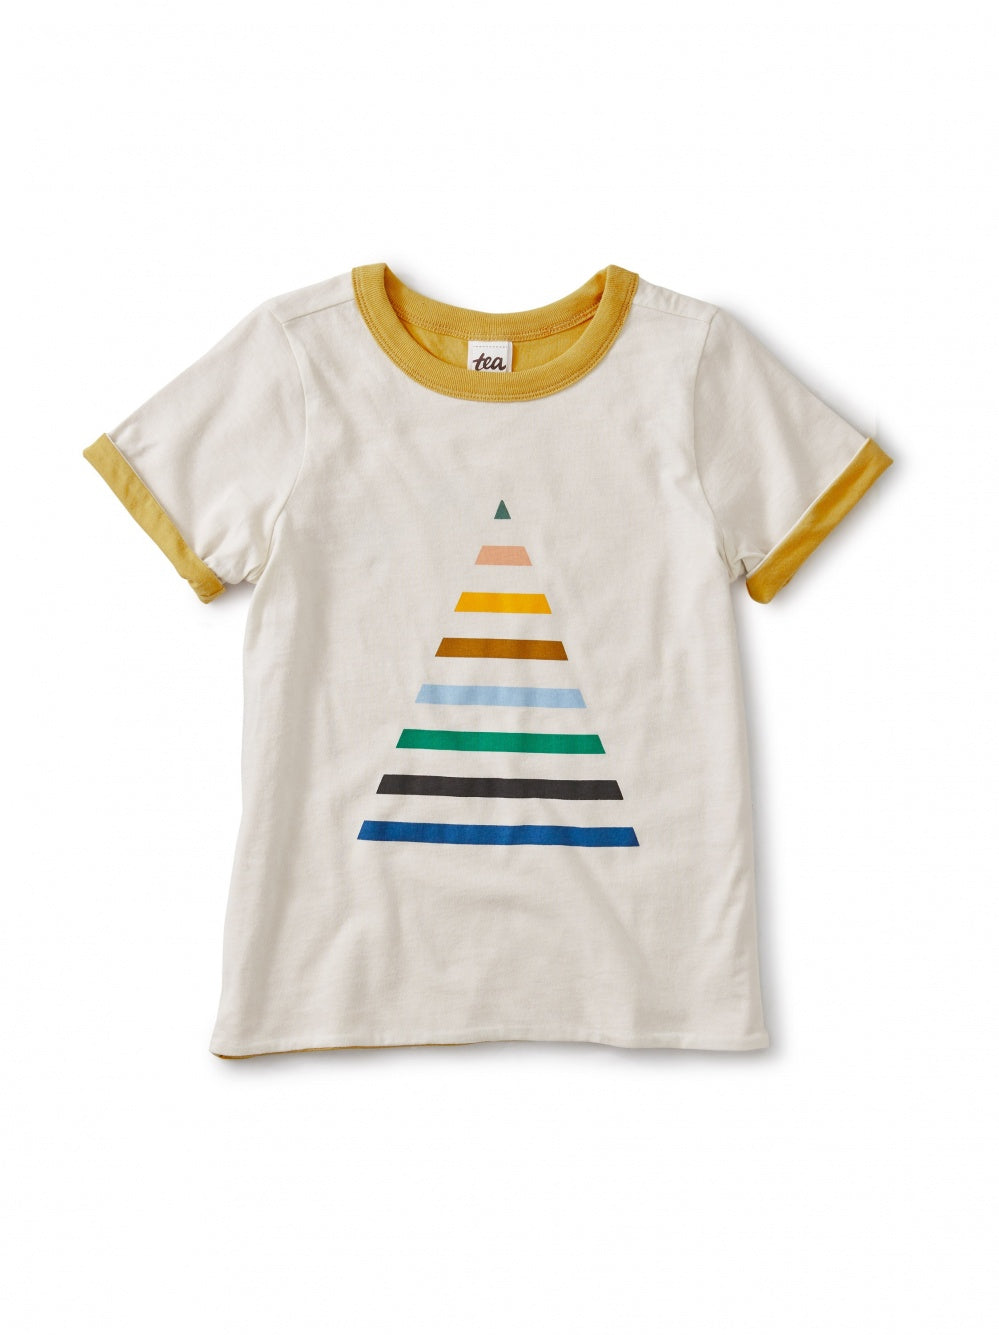 Reversible Pyramid T-Shirt